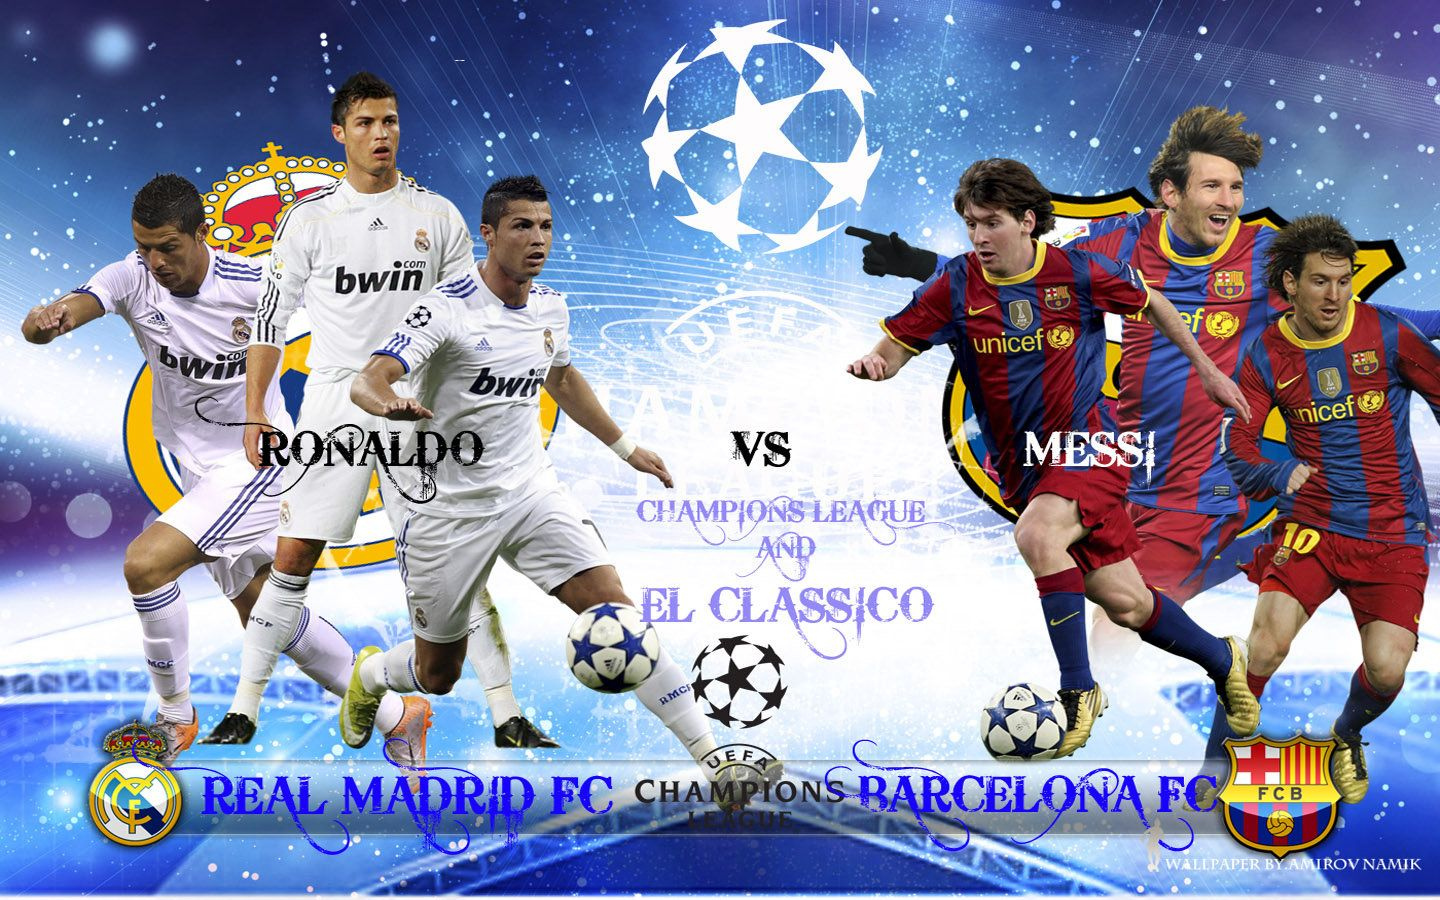 My 2 favourite football players cristiano ronaldo and lionel cristiano ronaldo and lionel messi voltagebd Choice Image